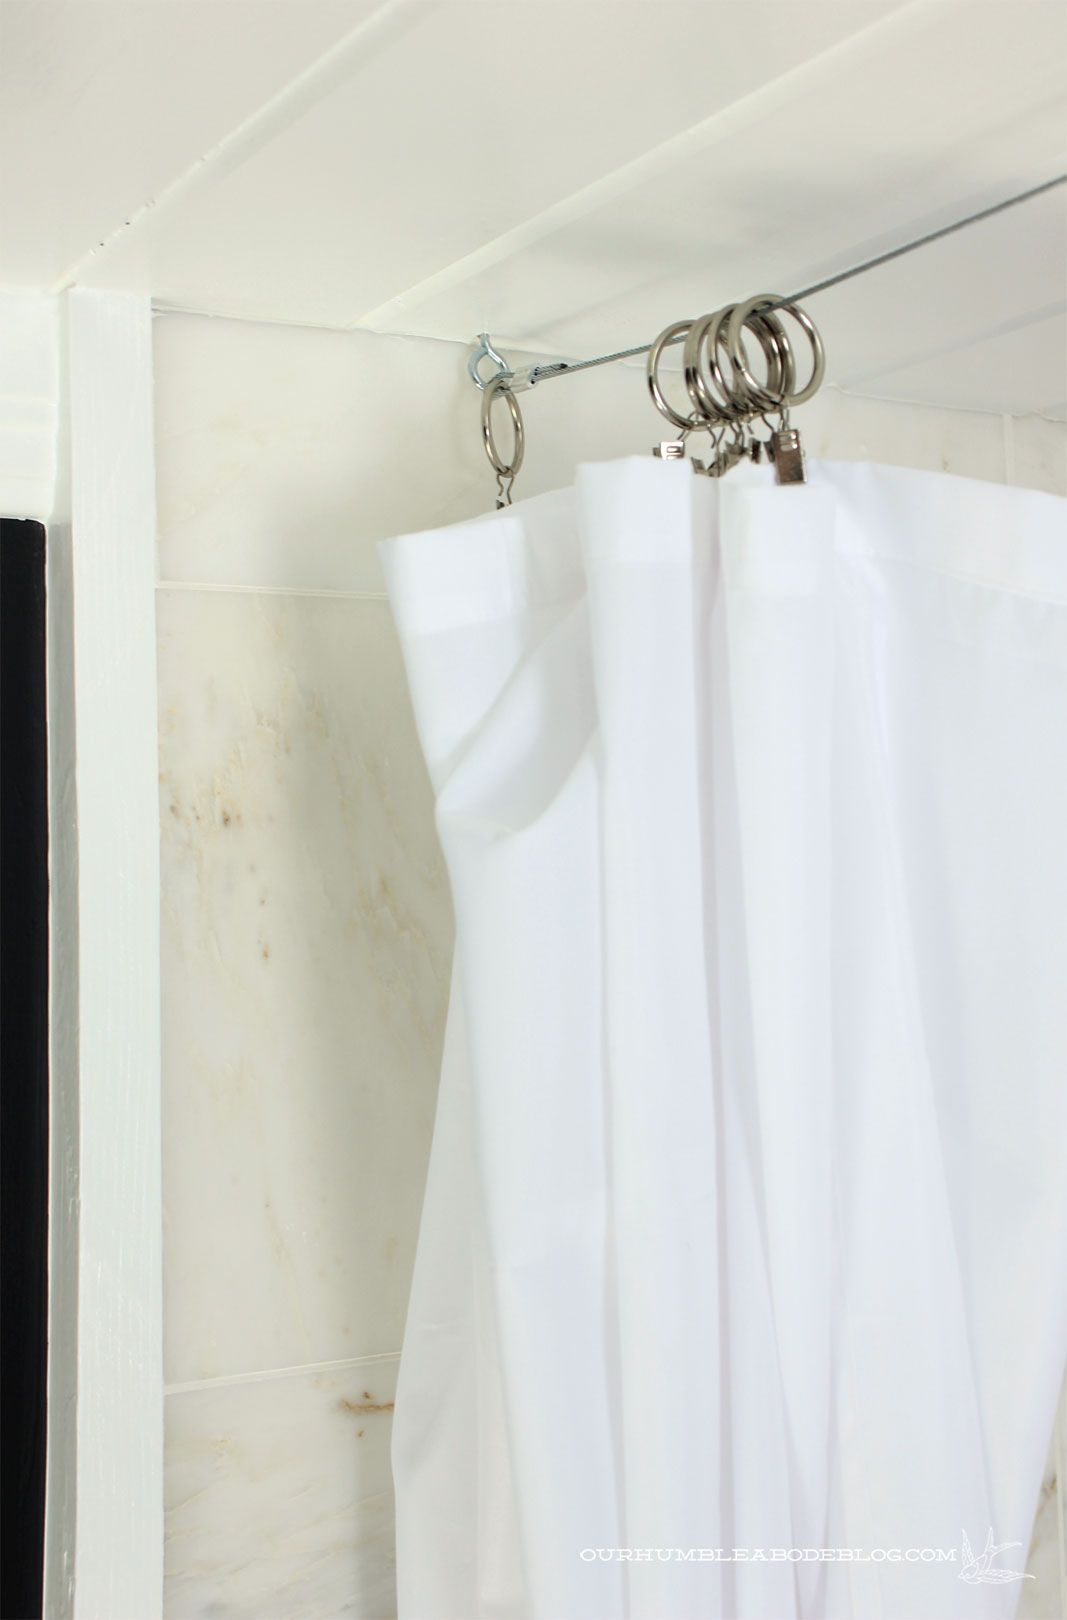 Use Cable And Clips For A Low Profile Shower Curtain Porch